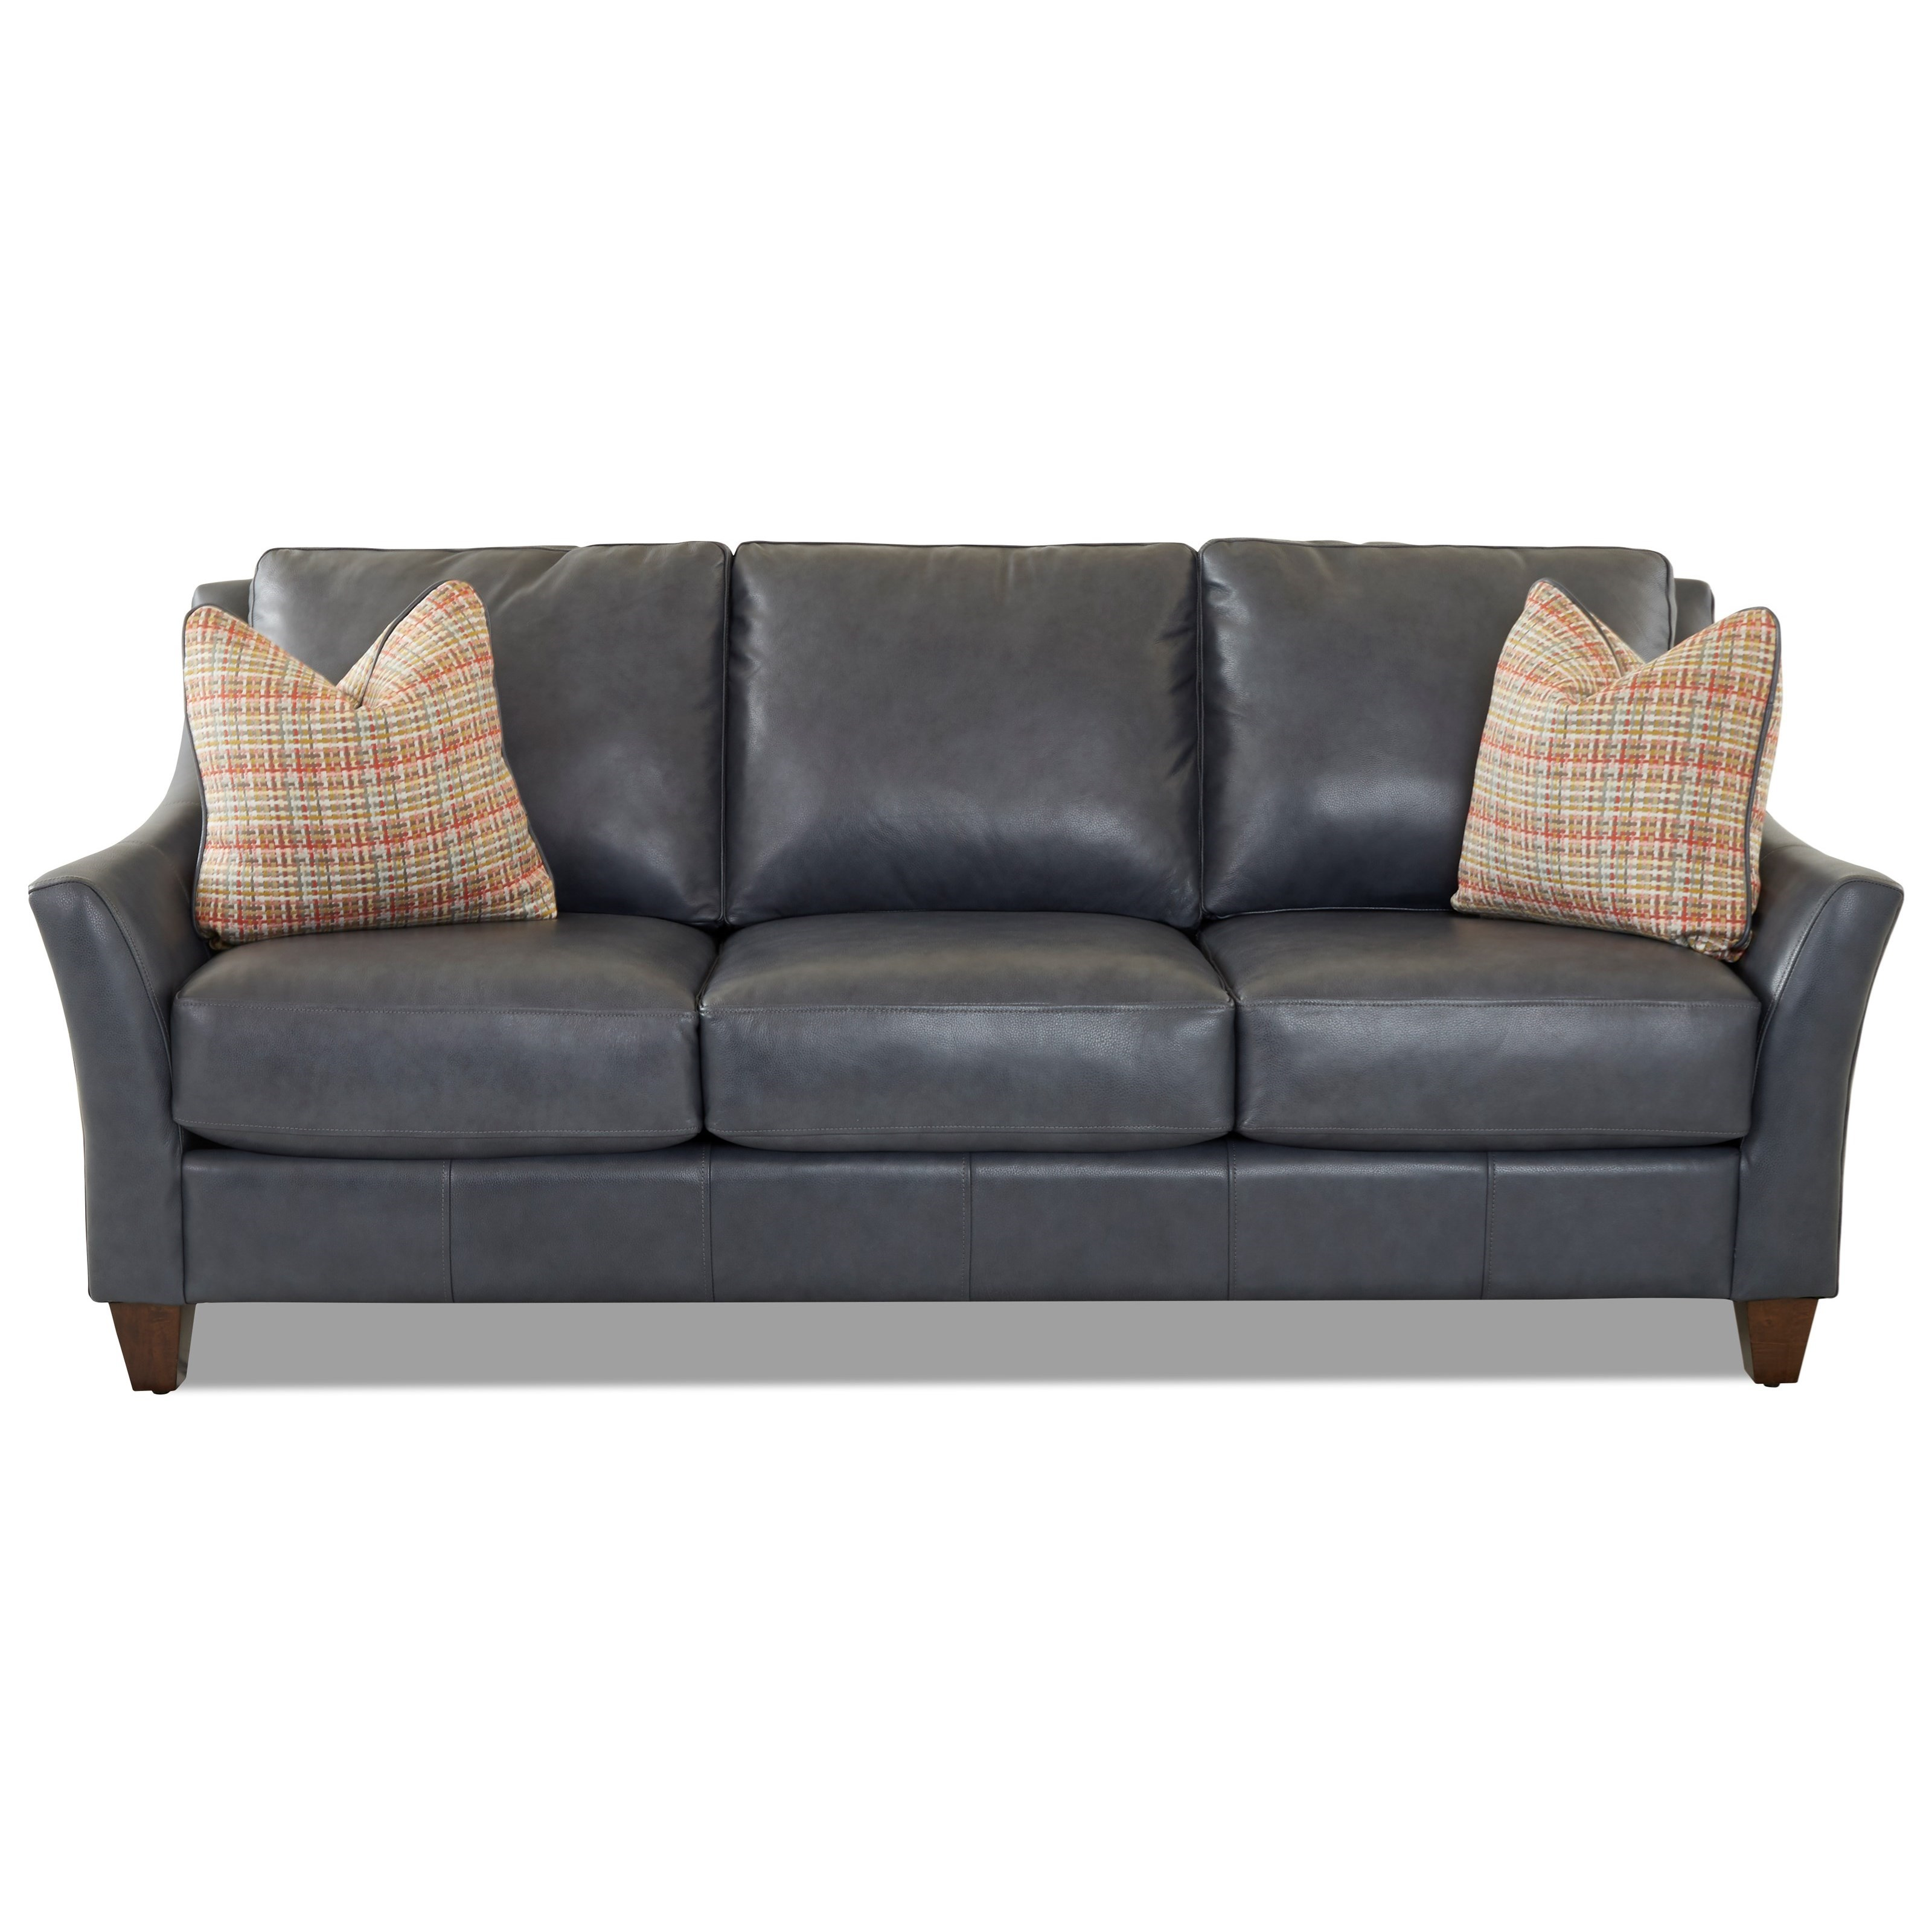 Sofa w/ Arm Pillows